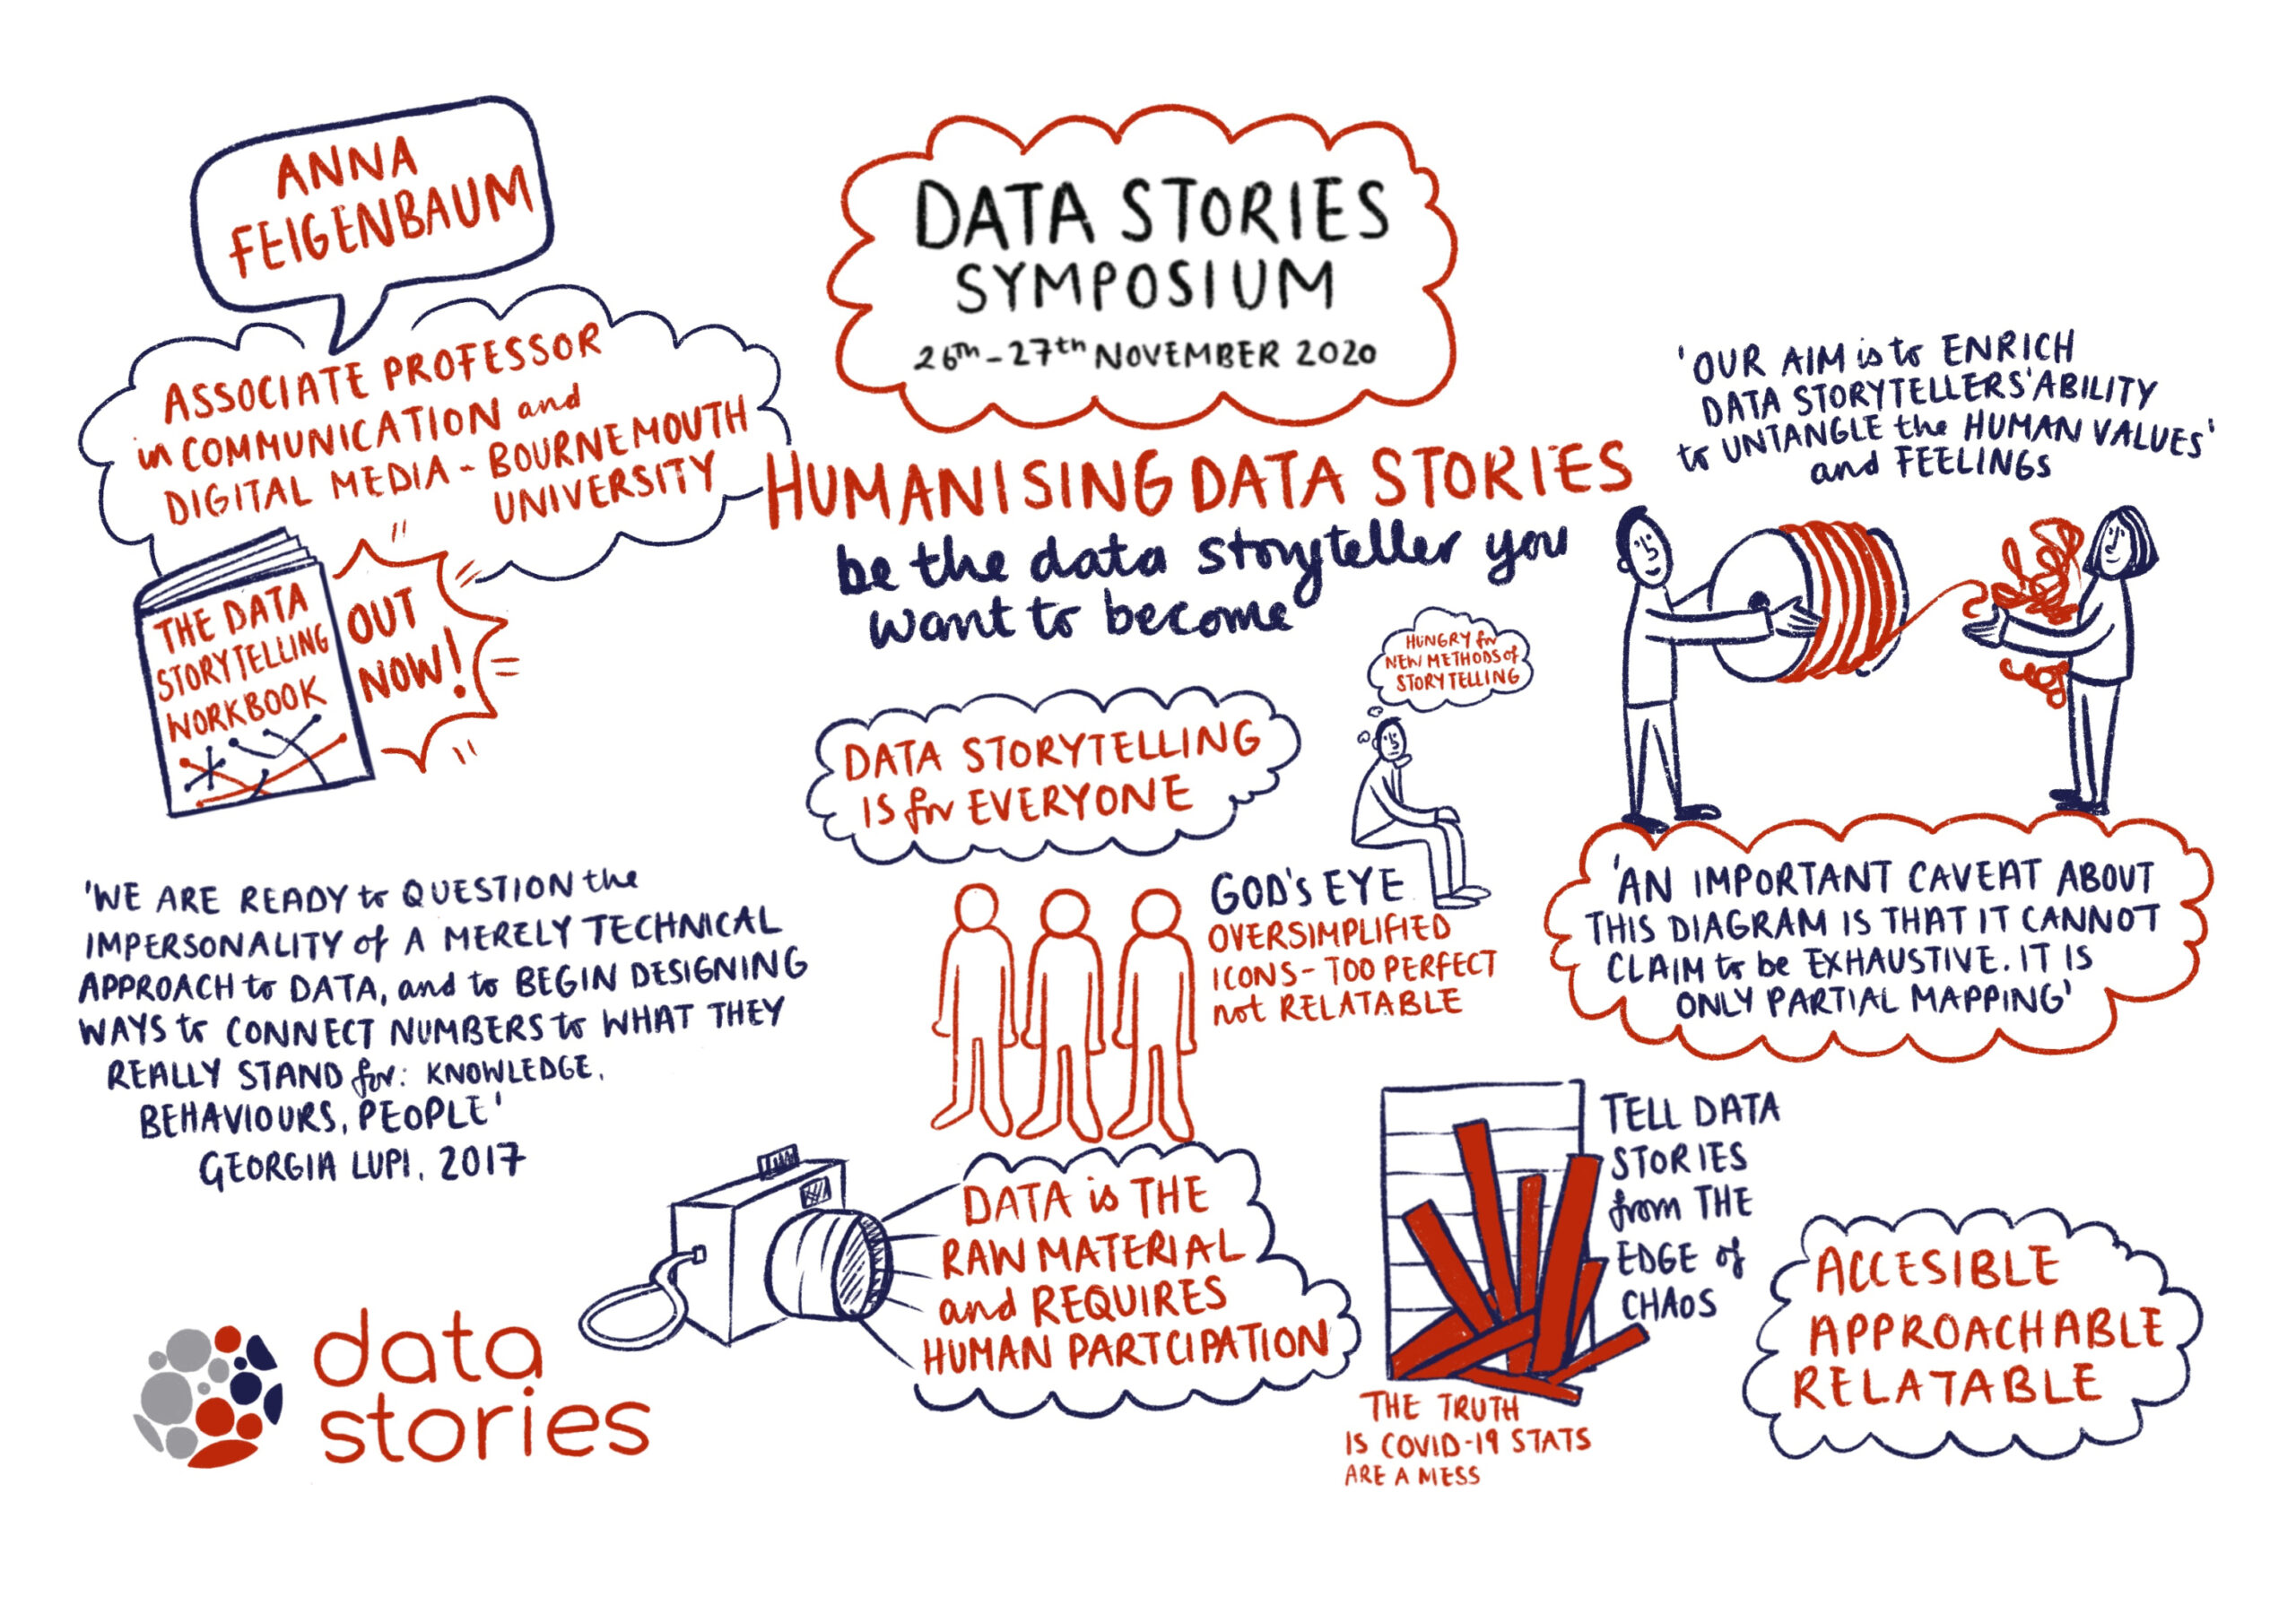 Dr. Anna Feigenbaum delivers keynotes on Data Storytelling and COVID-19